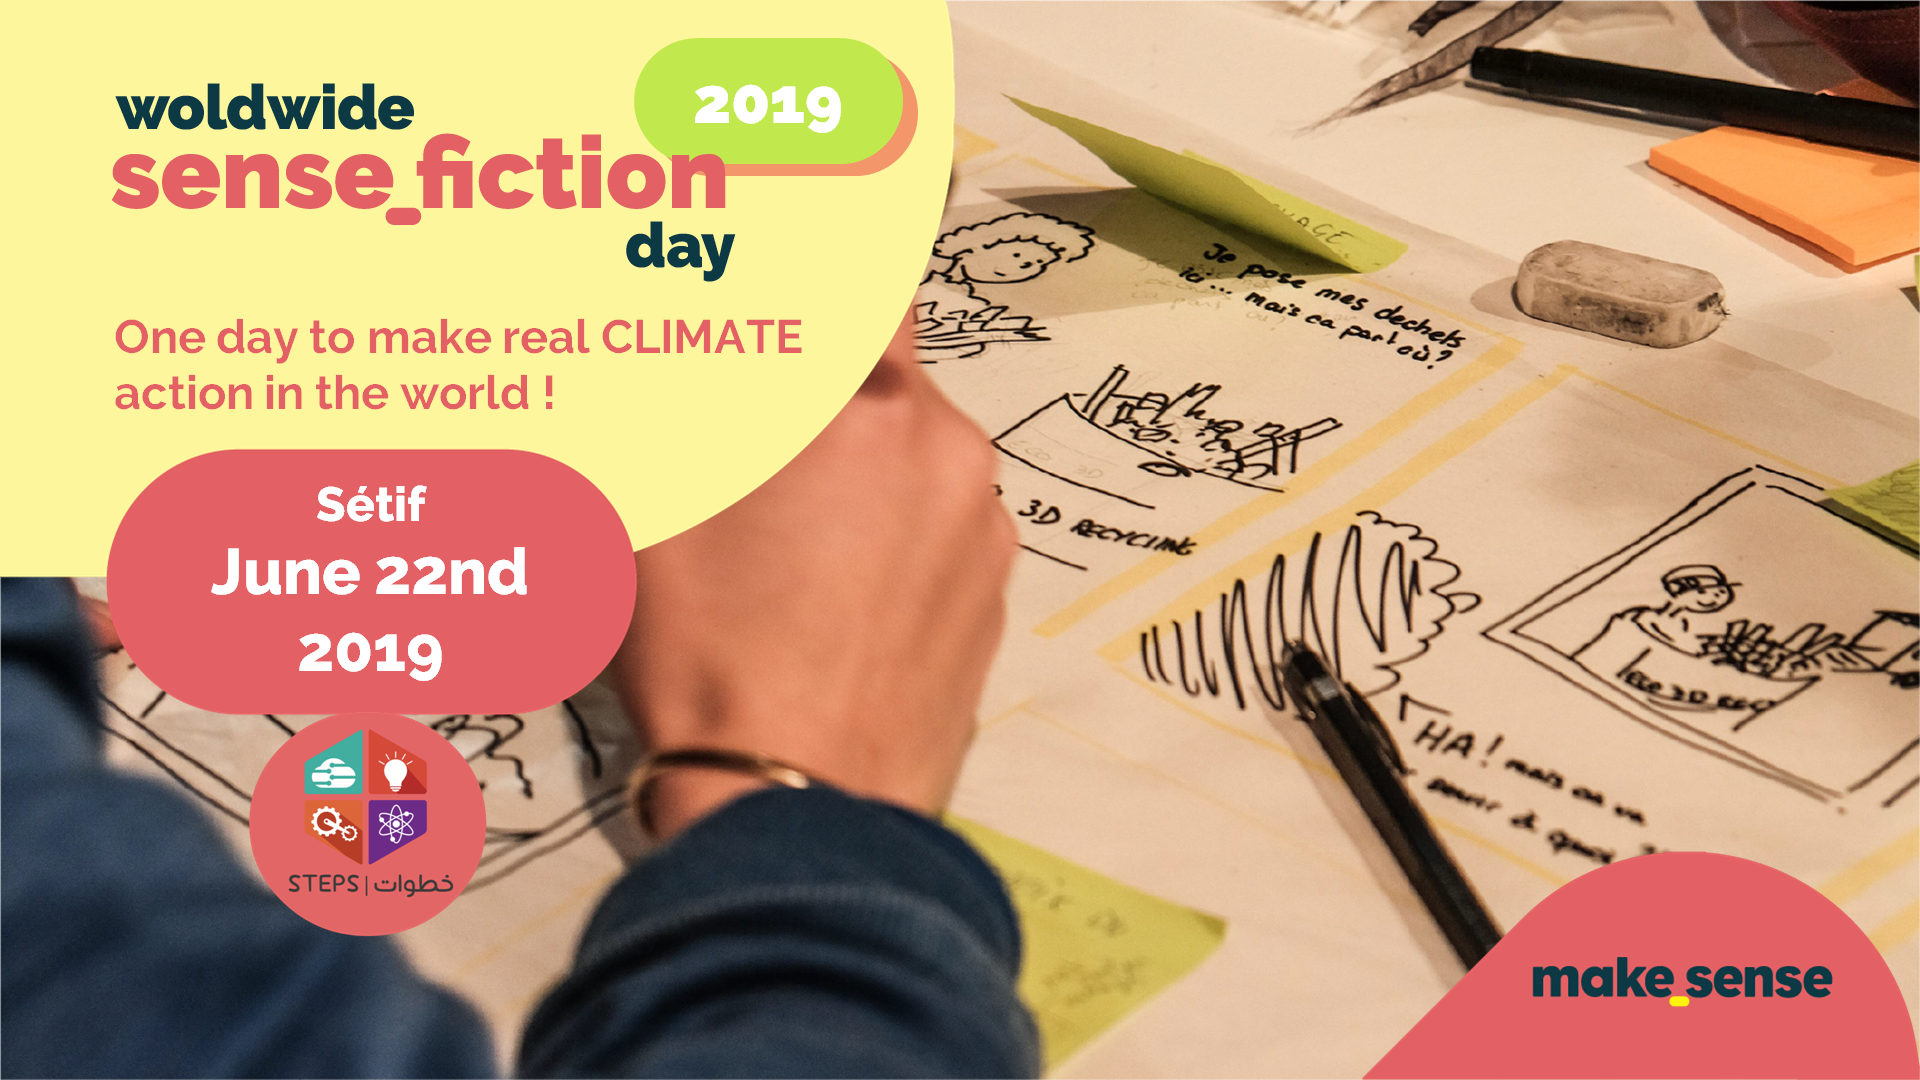 Image of the event : Sensefiction day 2019 - Sétif - Climate Action